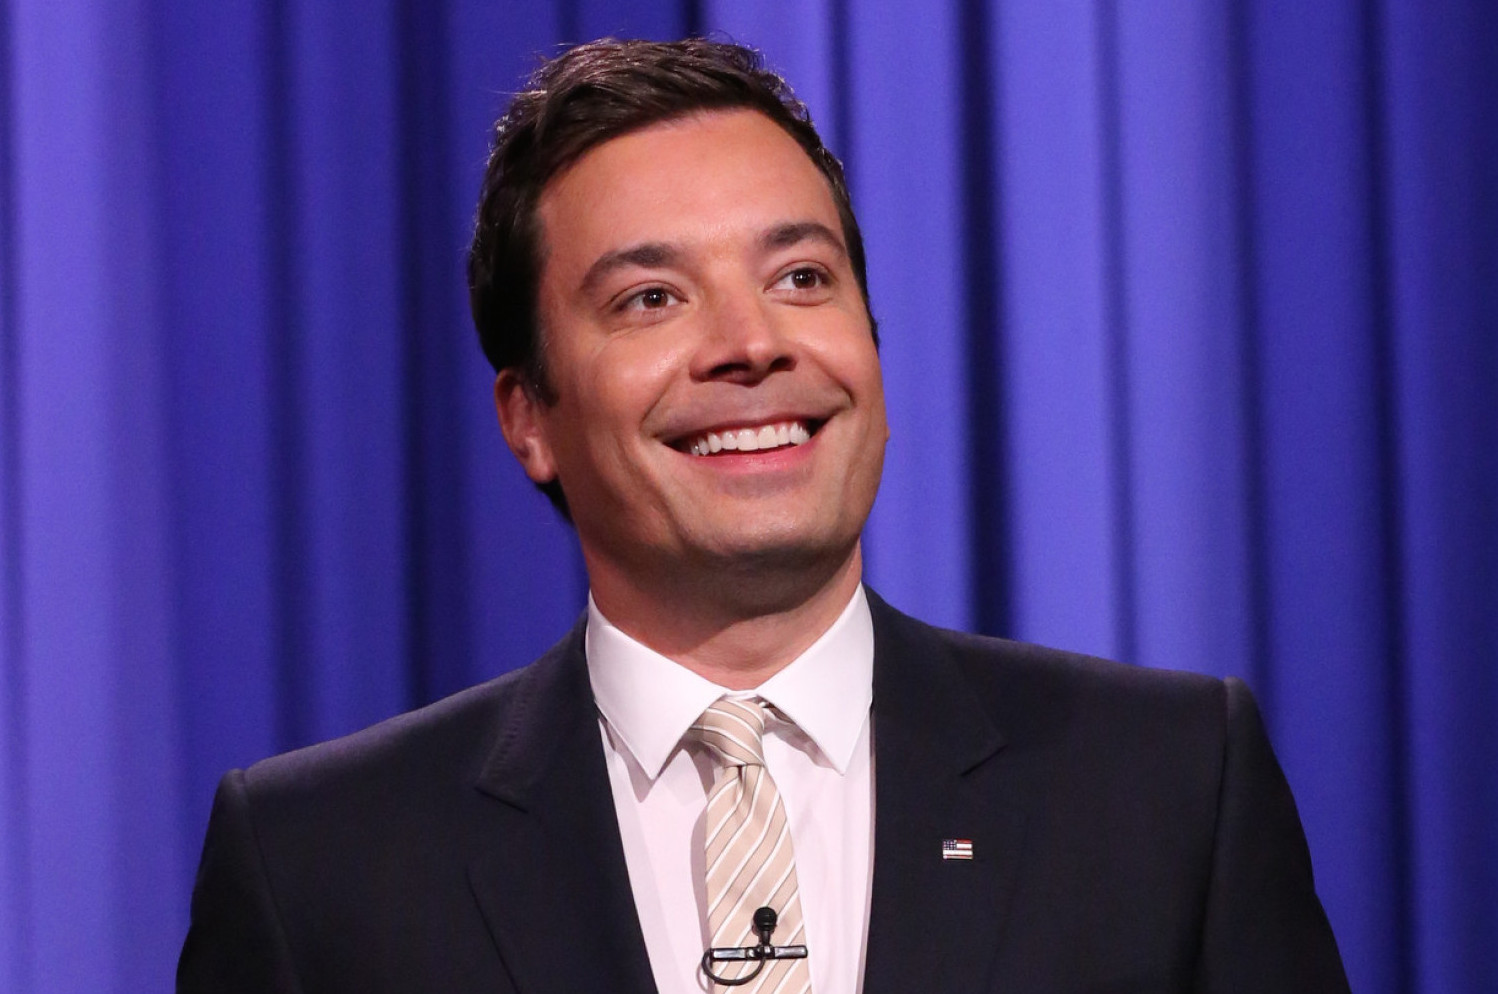 Jimmy Fallon Hospitalized, Cancels 'Tonight Show' Taping